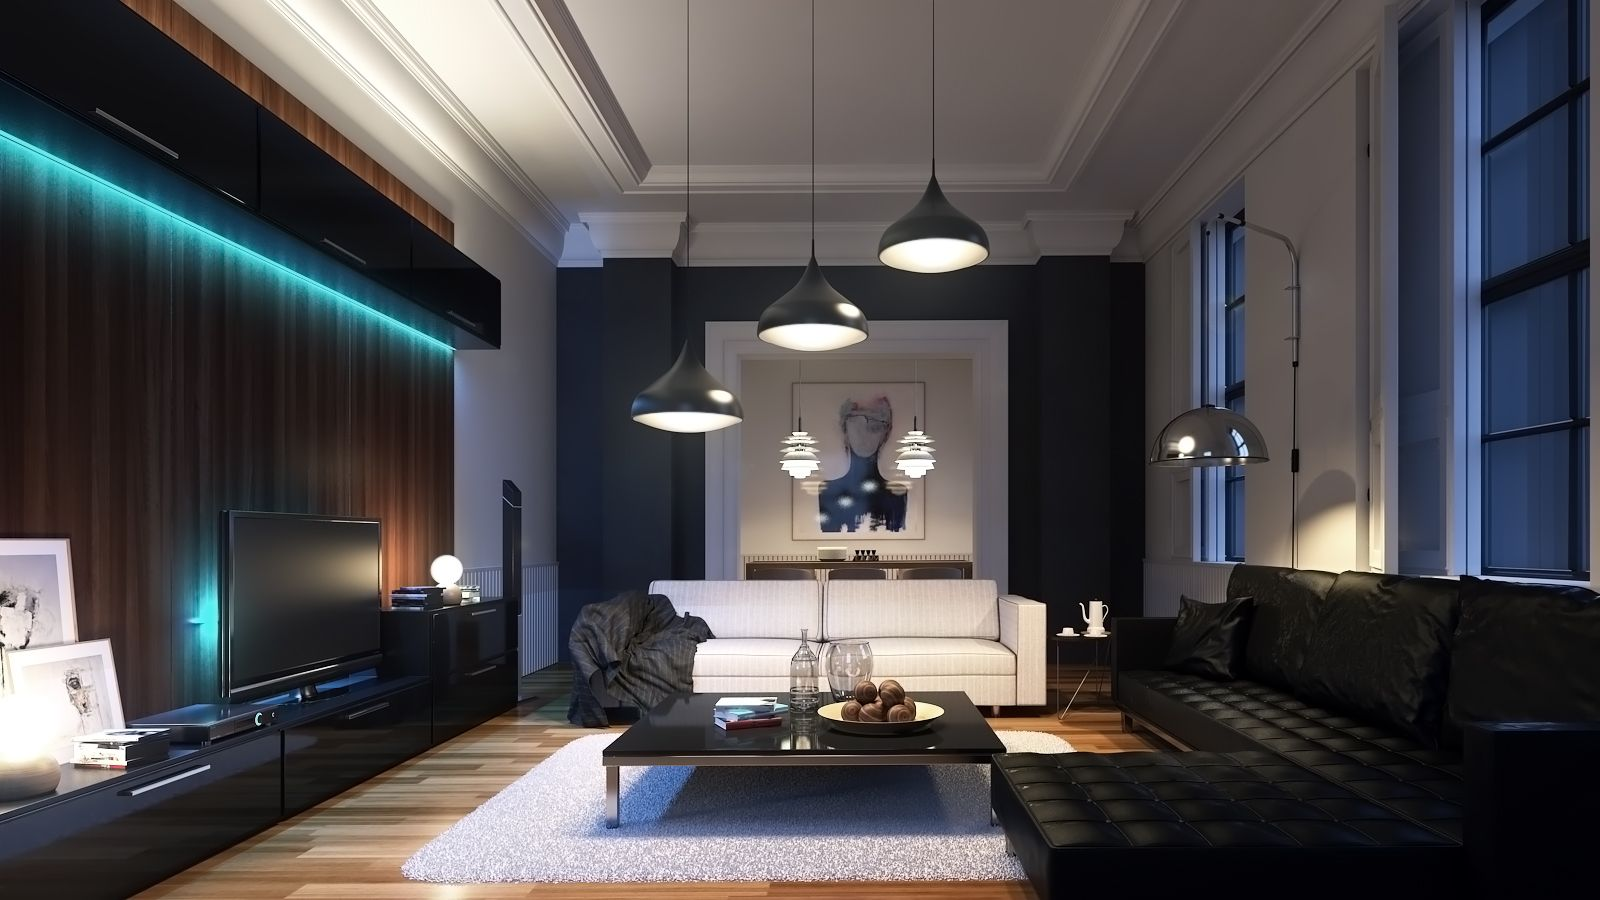 Designer Night Light Vray And 3ds Max Night Interior Making Of Part 1 Vray